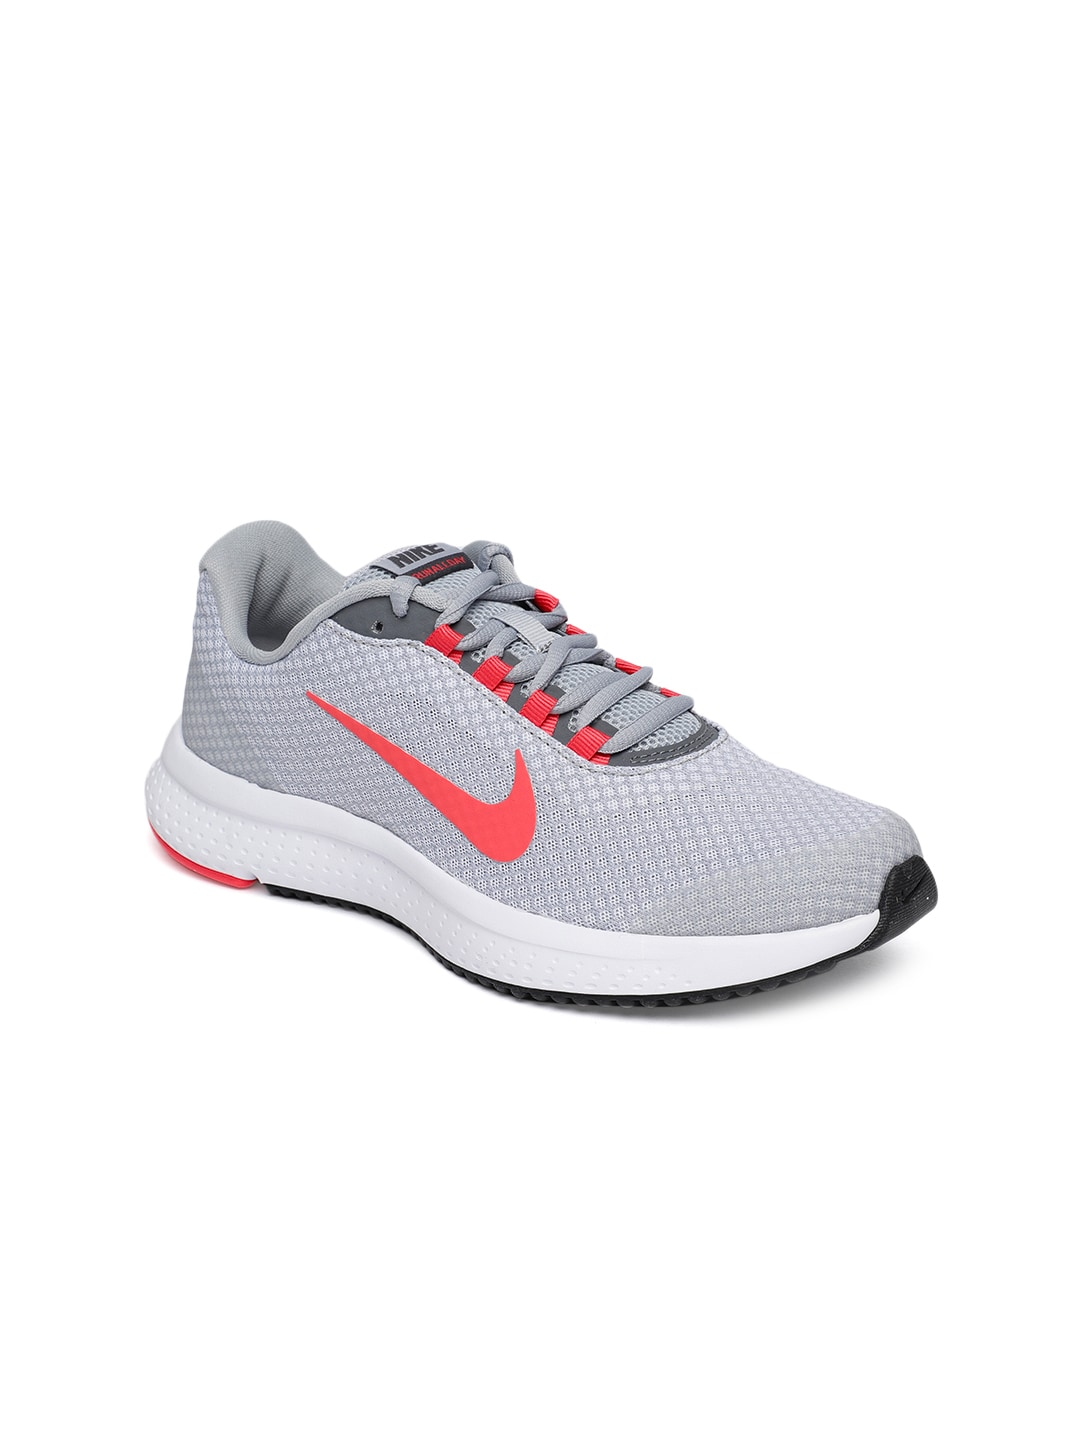 5ec4ddbb931a Nike Running Shoes - Buy Nike Running Shoes Online